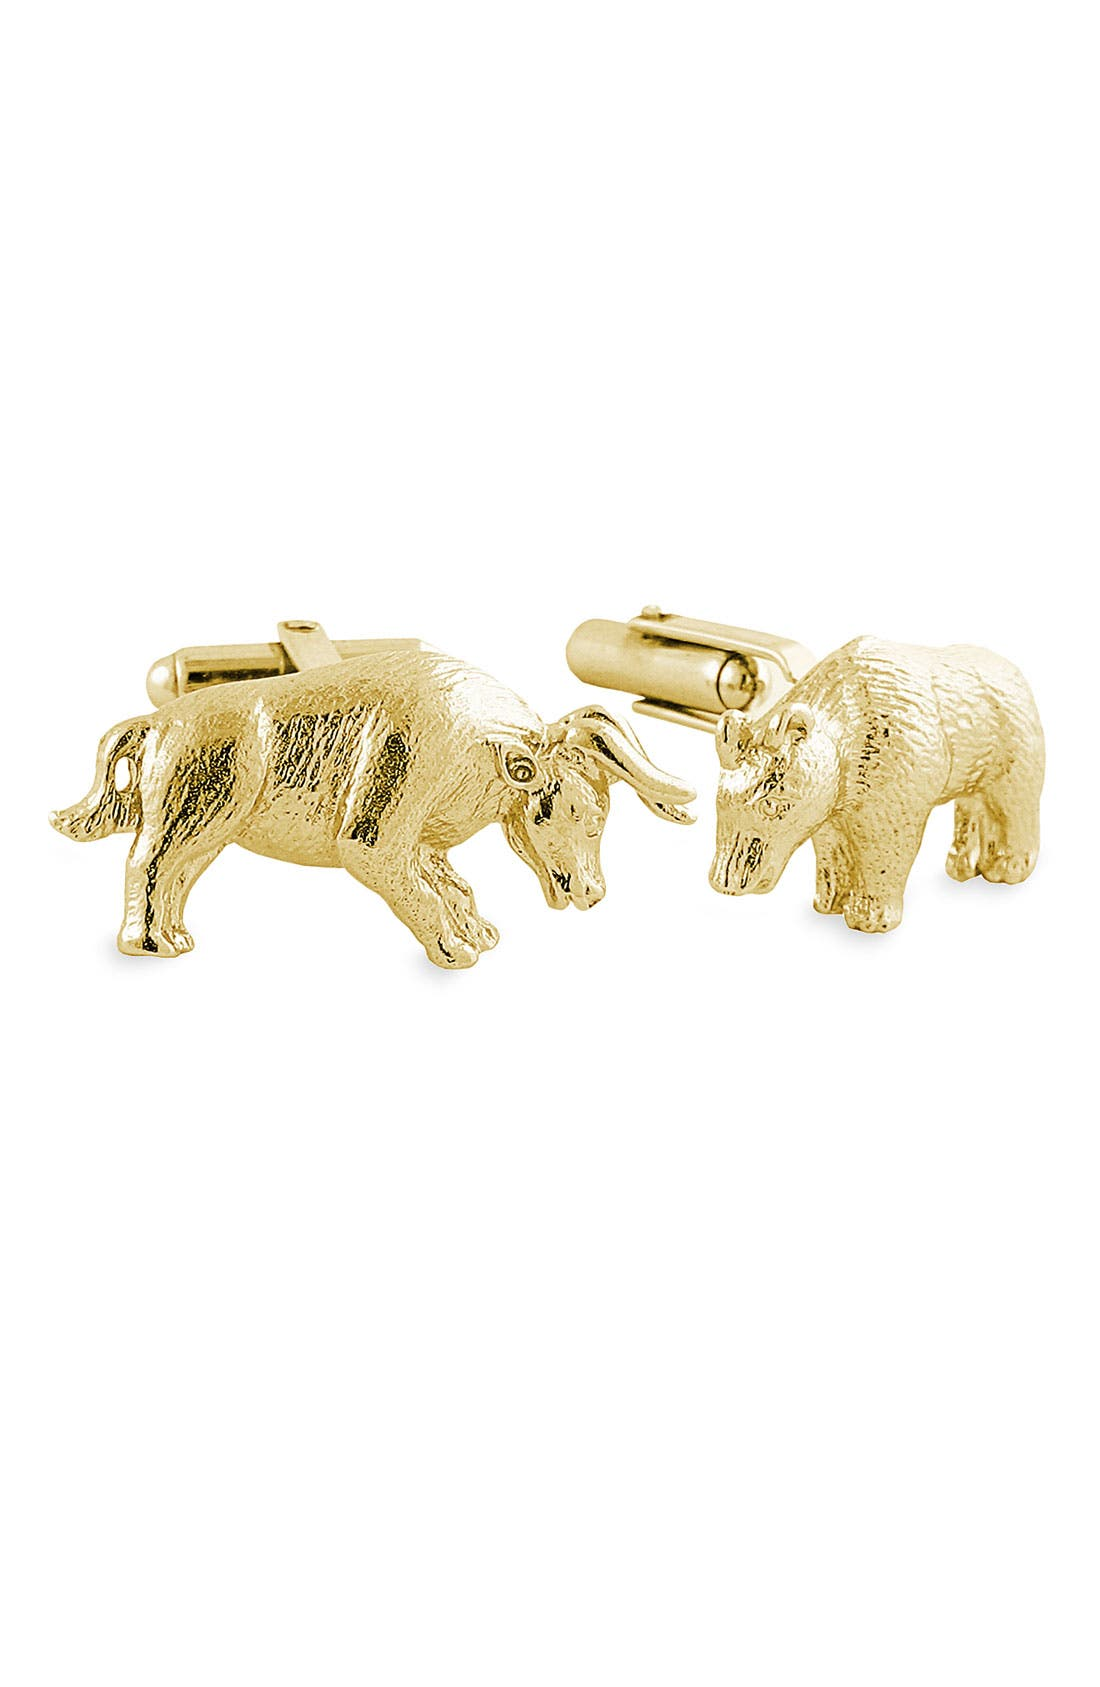 Alternate Image 1 Selected - David Donahue 'Bull & Bear' Cuff Links